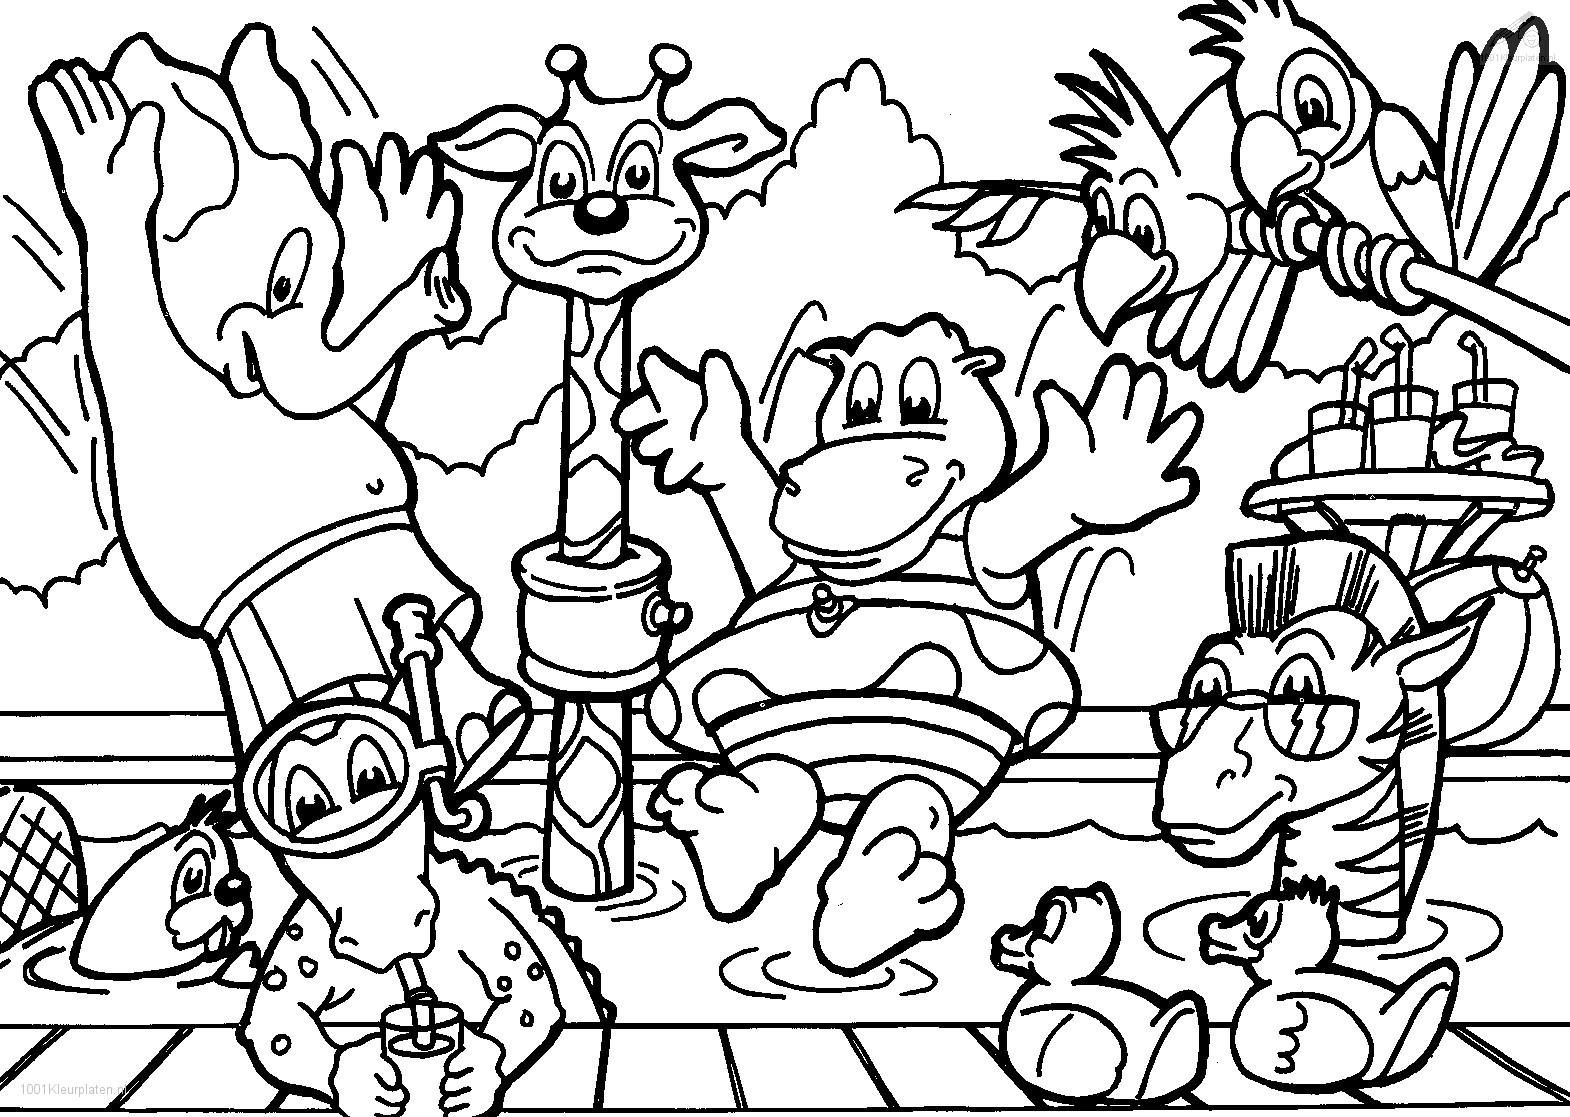 Printable Animal Coloring Pages at GetDrawings.com   Free ...